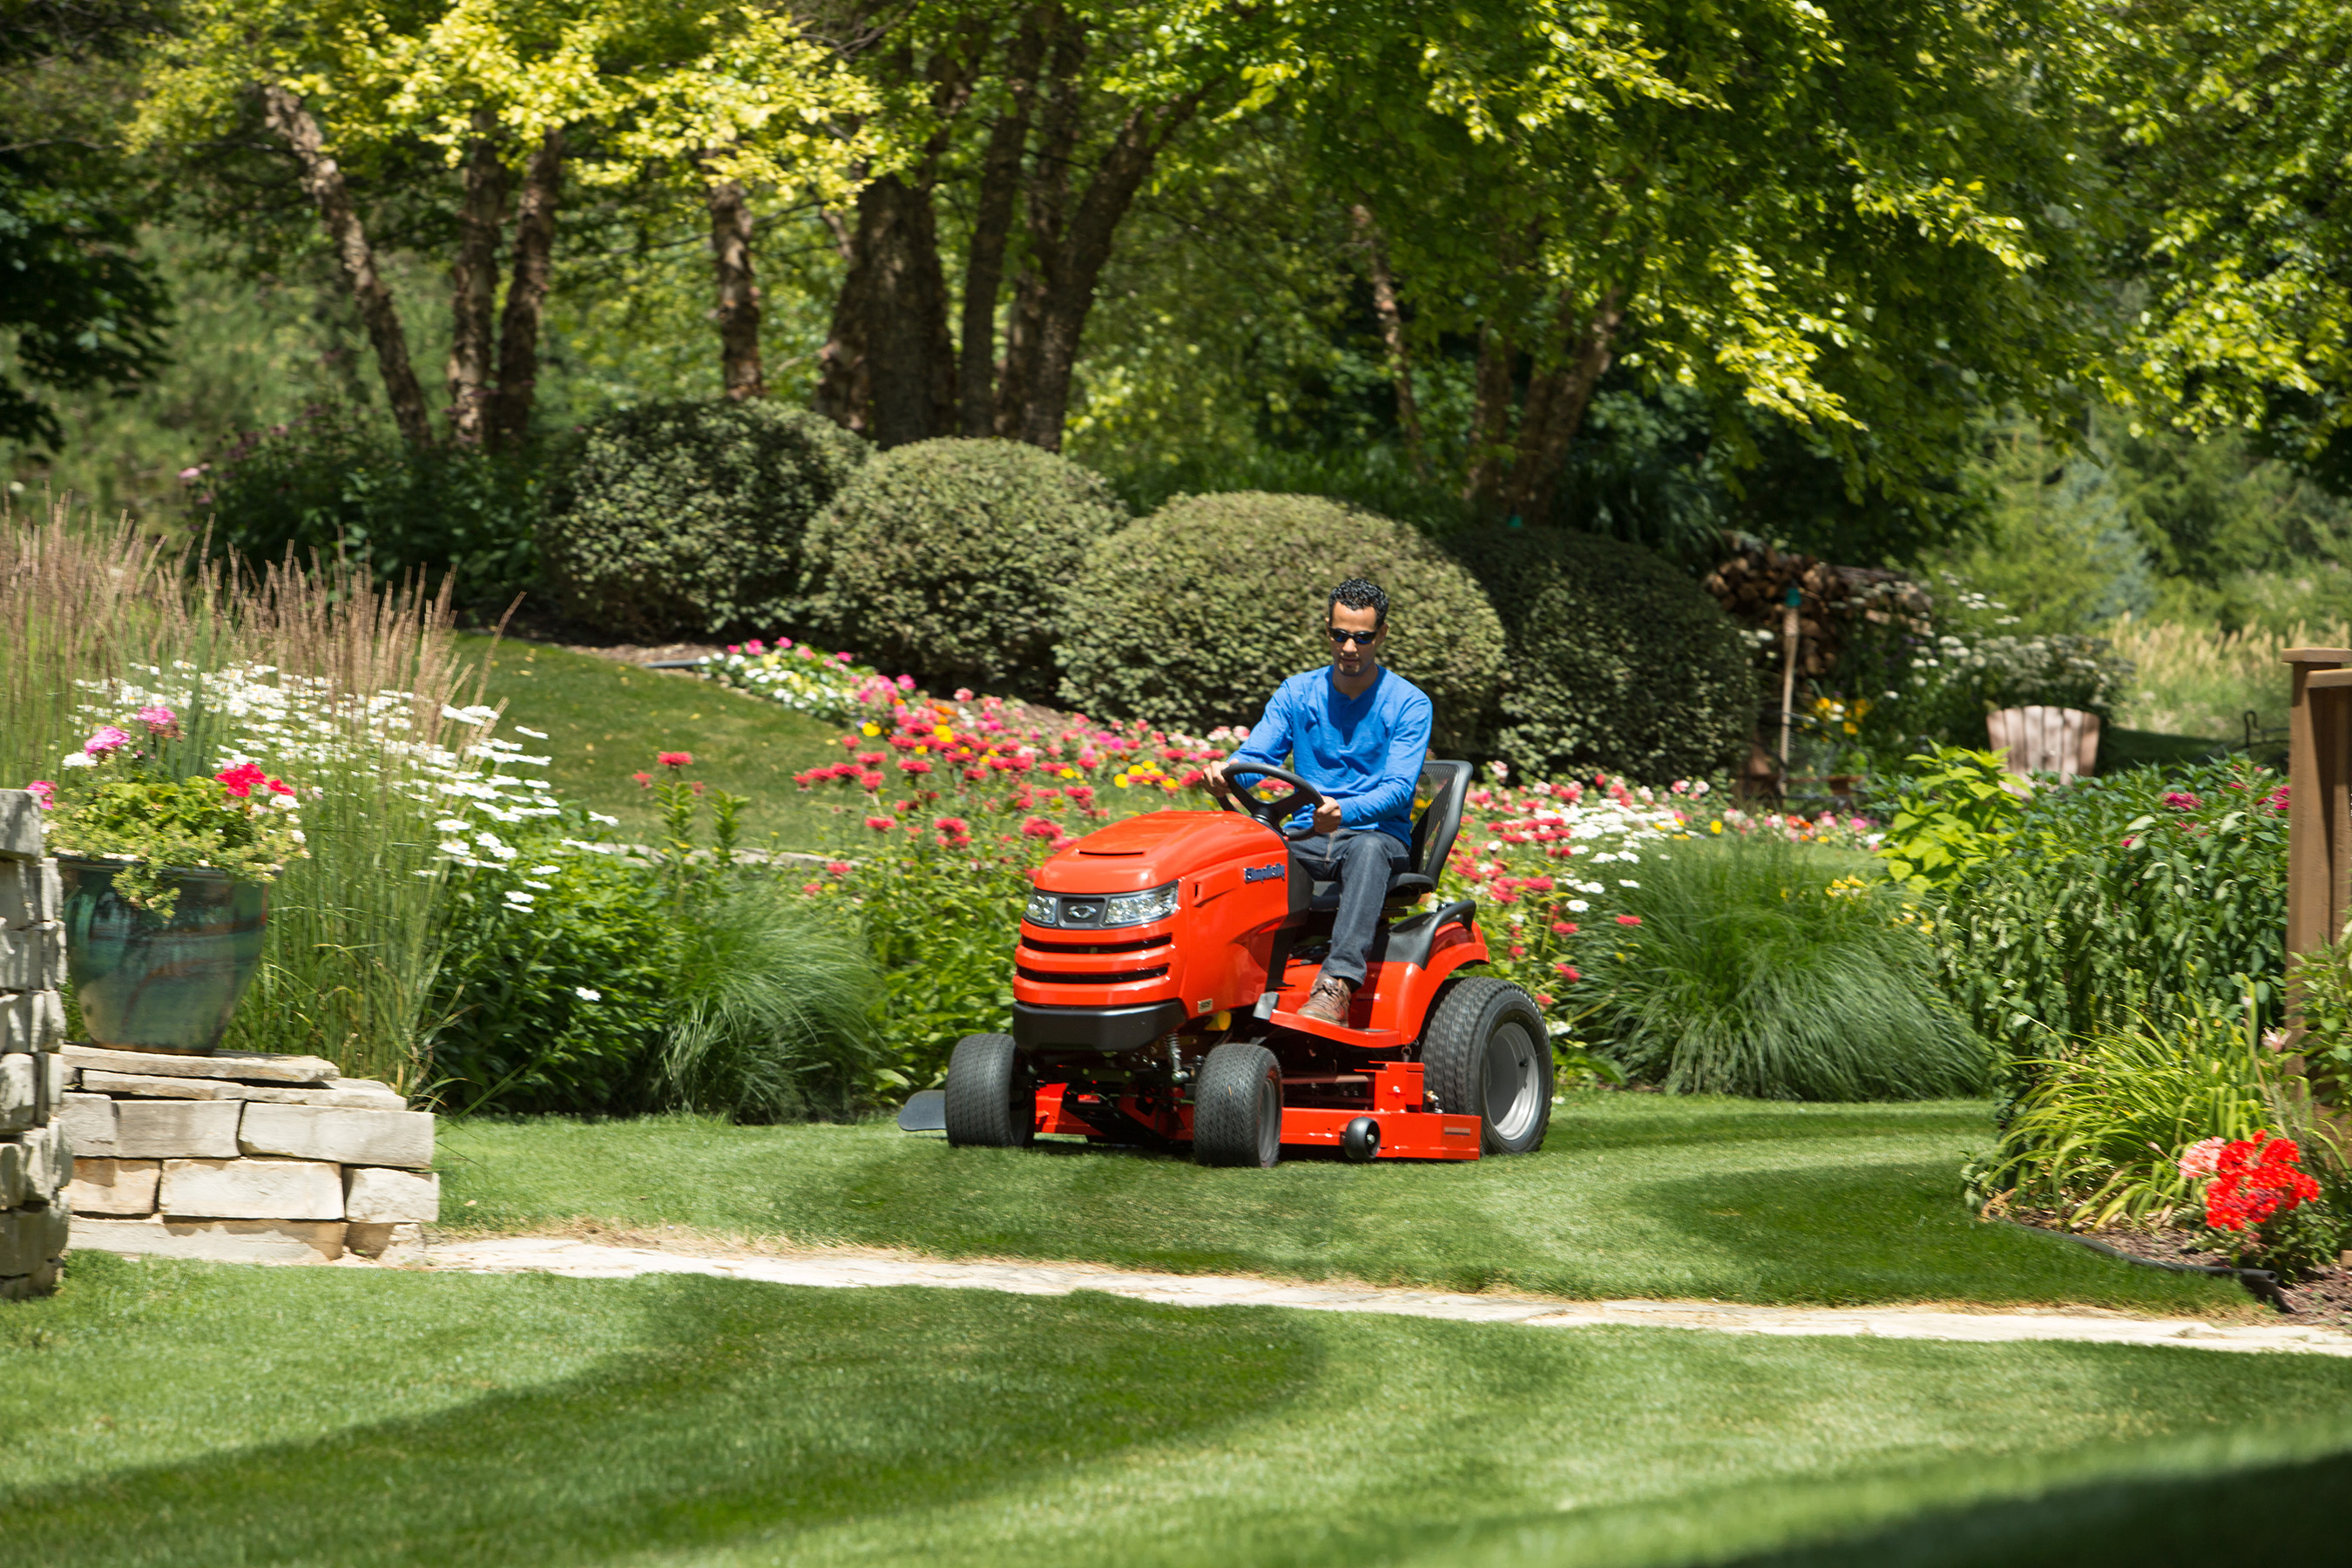 The Prestige features a Simplicity patented Free Floating mower deck with full-width rollers that assures a smooth scalp-free cut and allows the operator to create ballpark striping patterns.